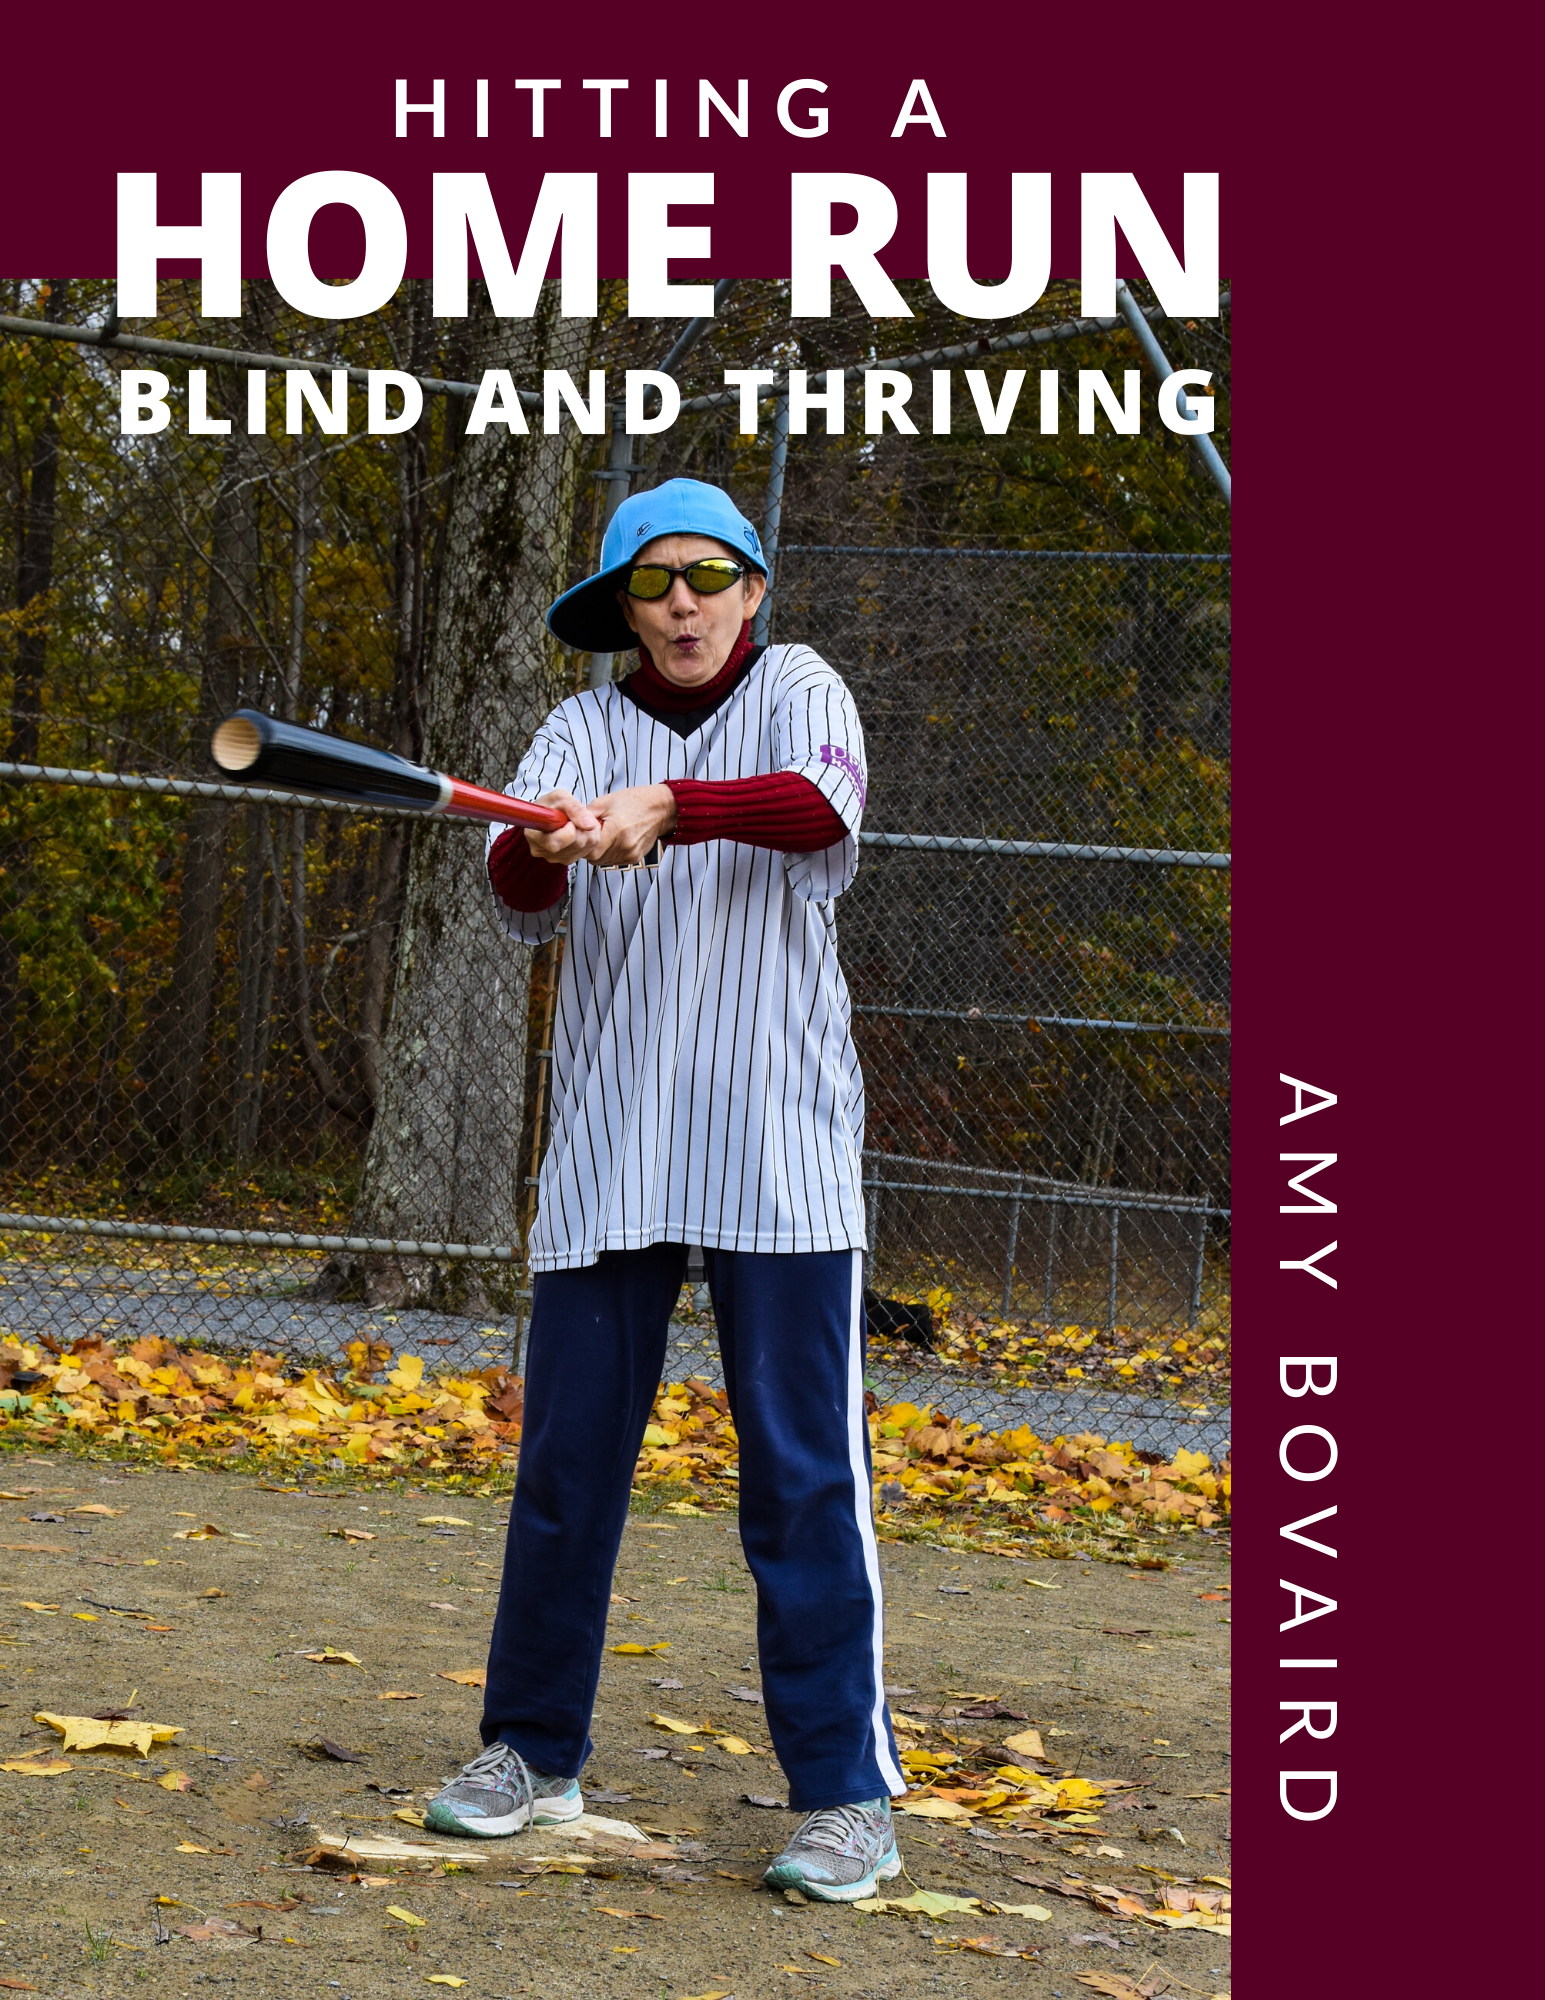 Hitting A Home Run: Blind and Thriving